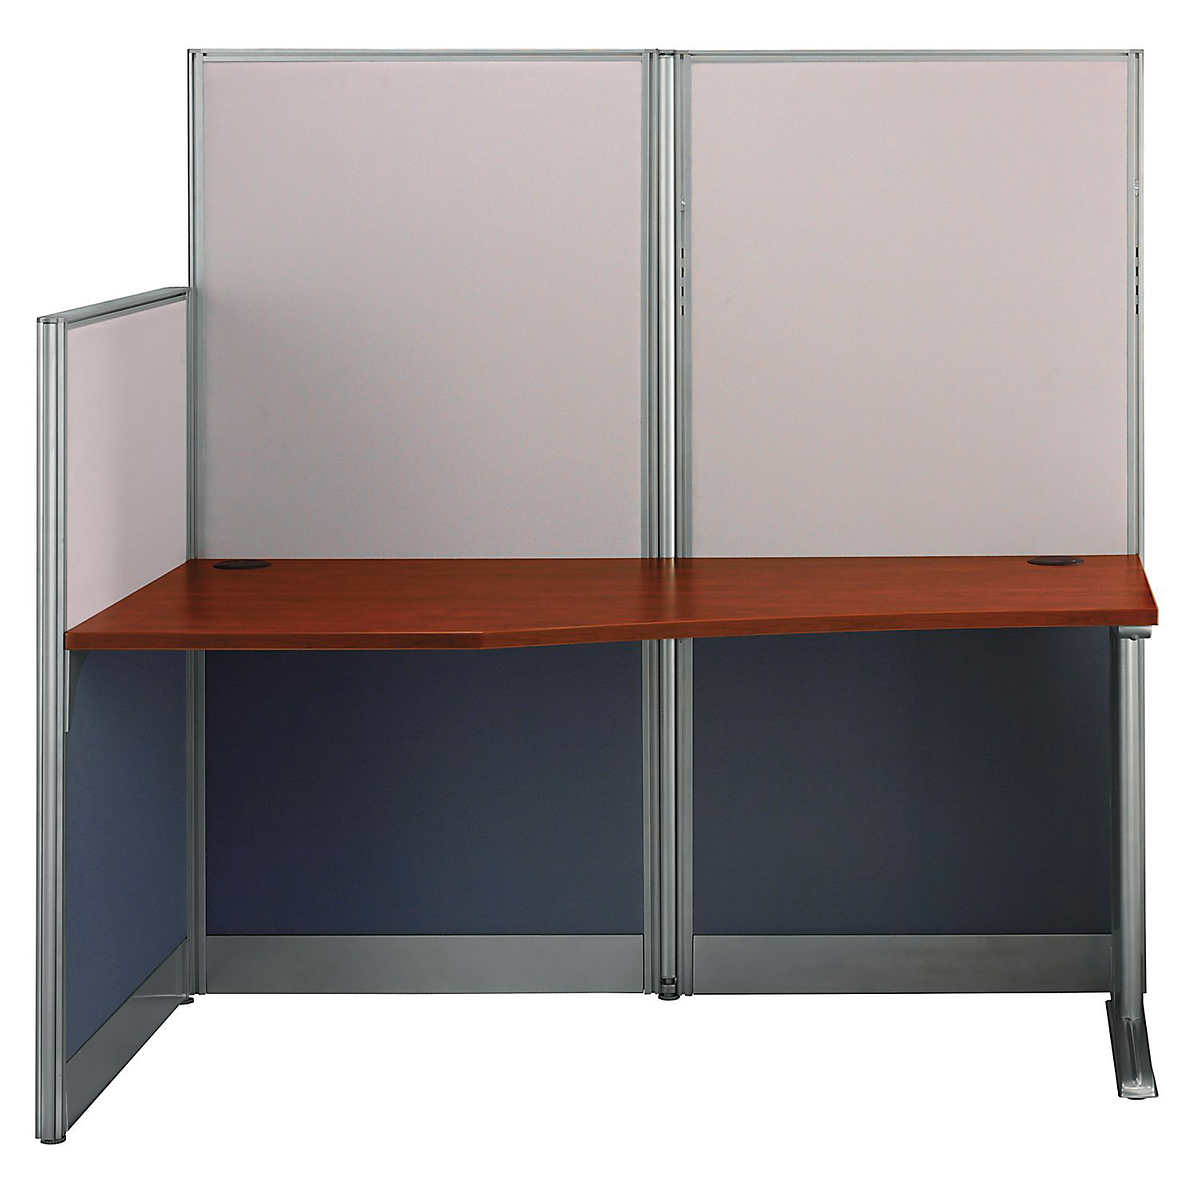 cubicles & panel systems | costco